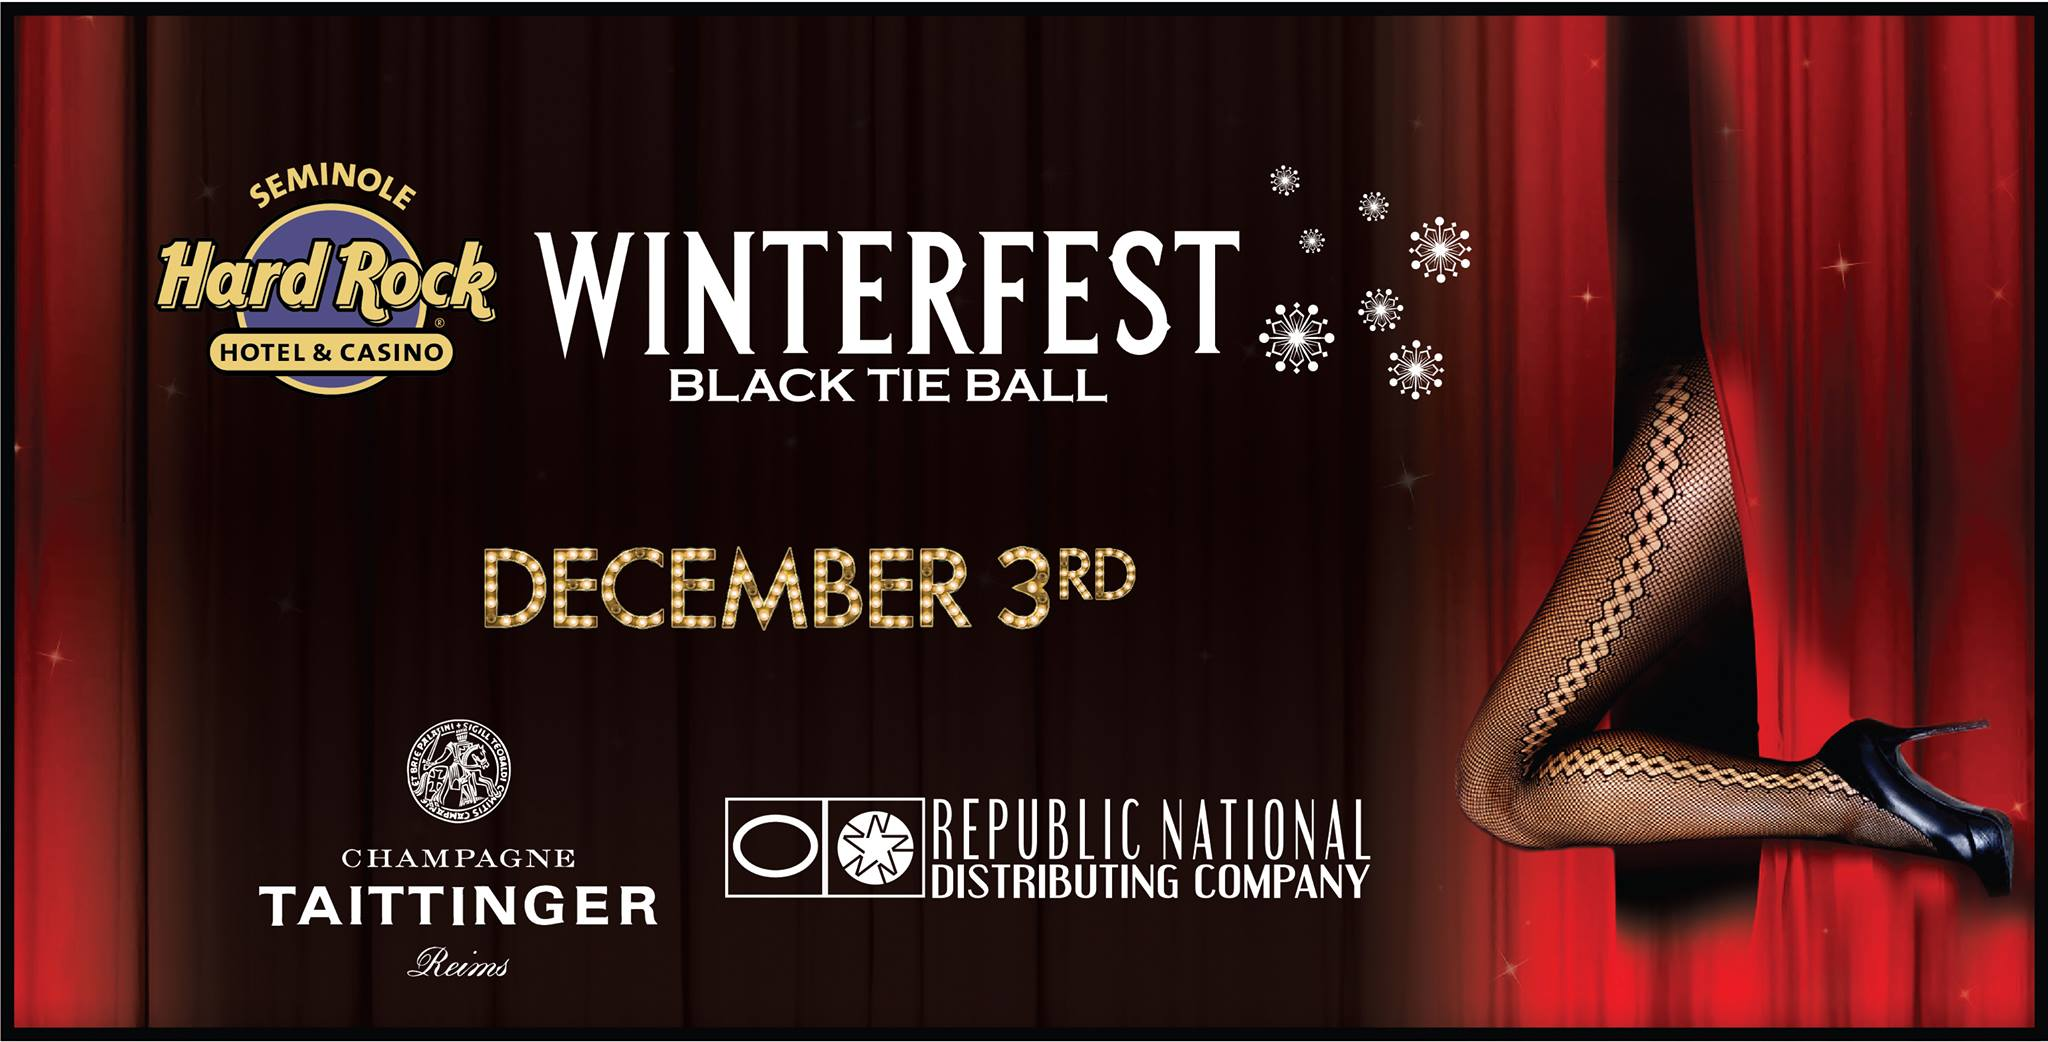 Winterfest Black Tie Ball